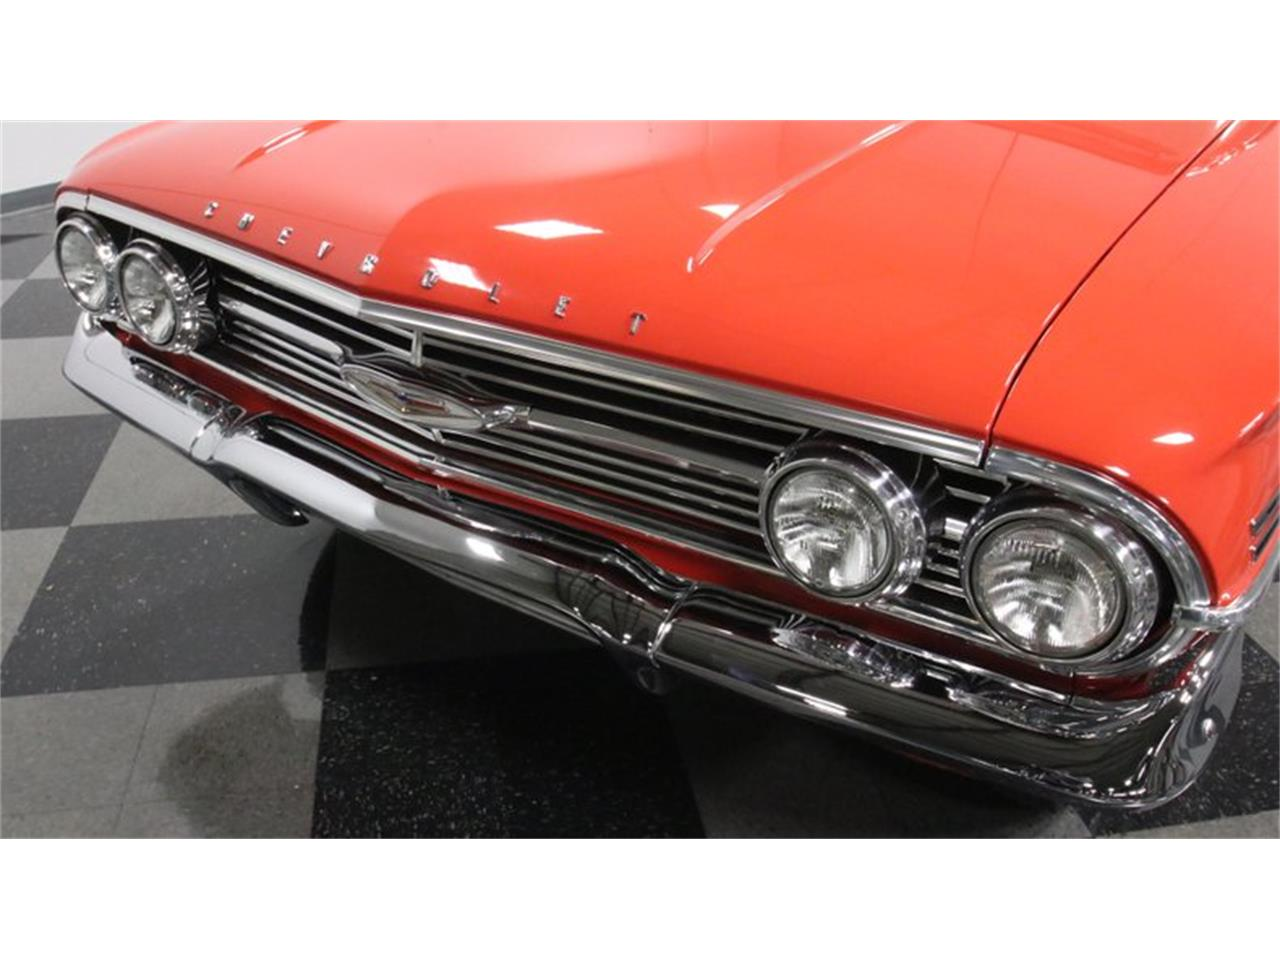 1960 Chevrolet Impala (CC-1416584) for sale in Lithia Springs, Georgia